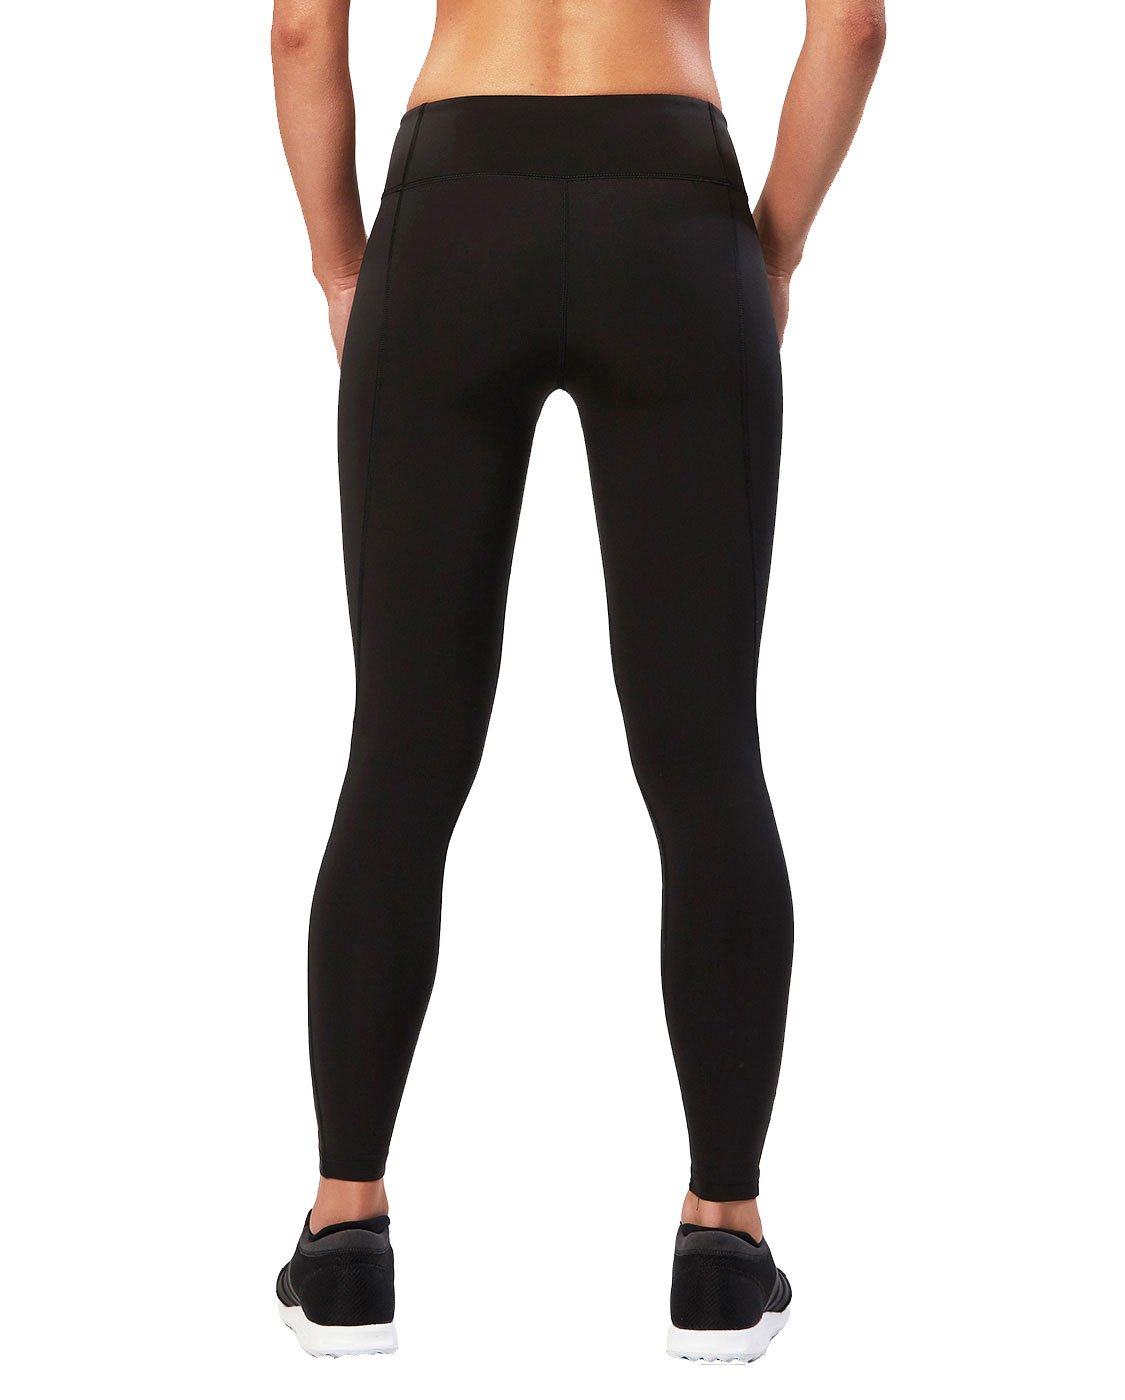 2XU Women's Active Compression Tights, Black/Silver, Large by 2XU (Image #3)